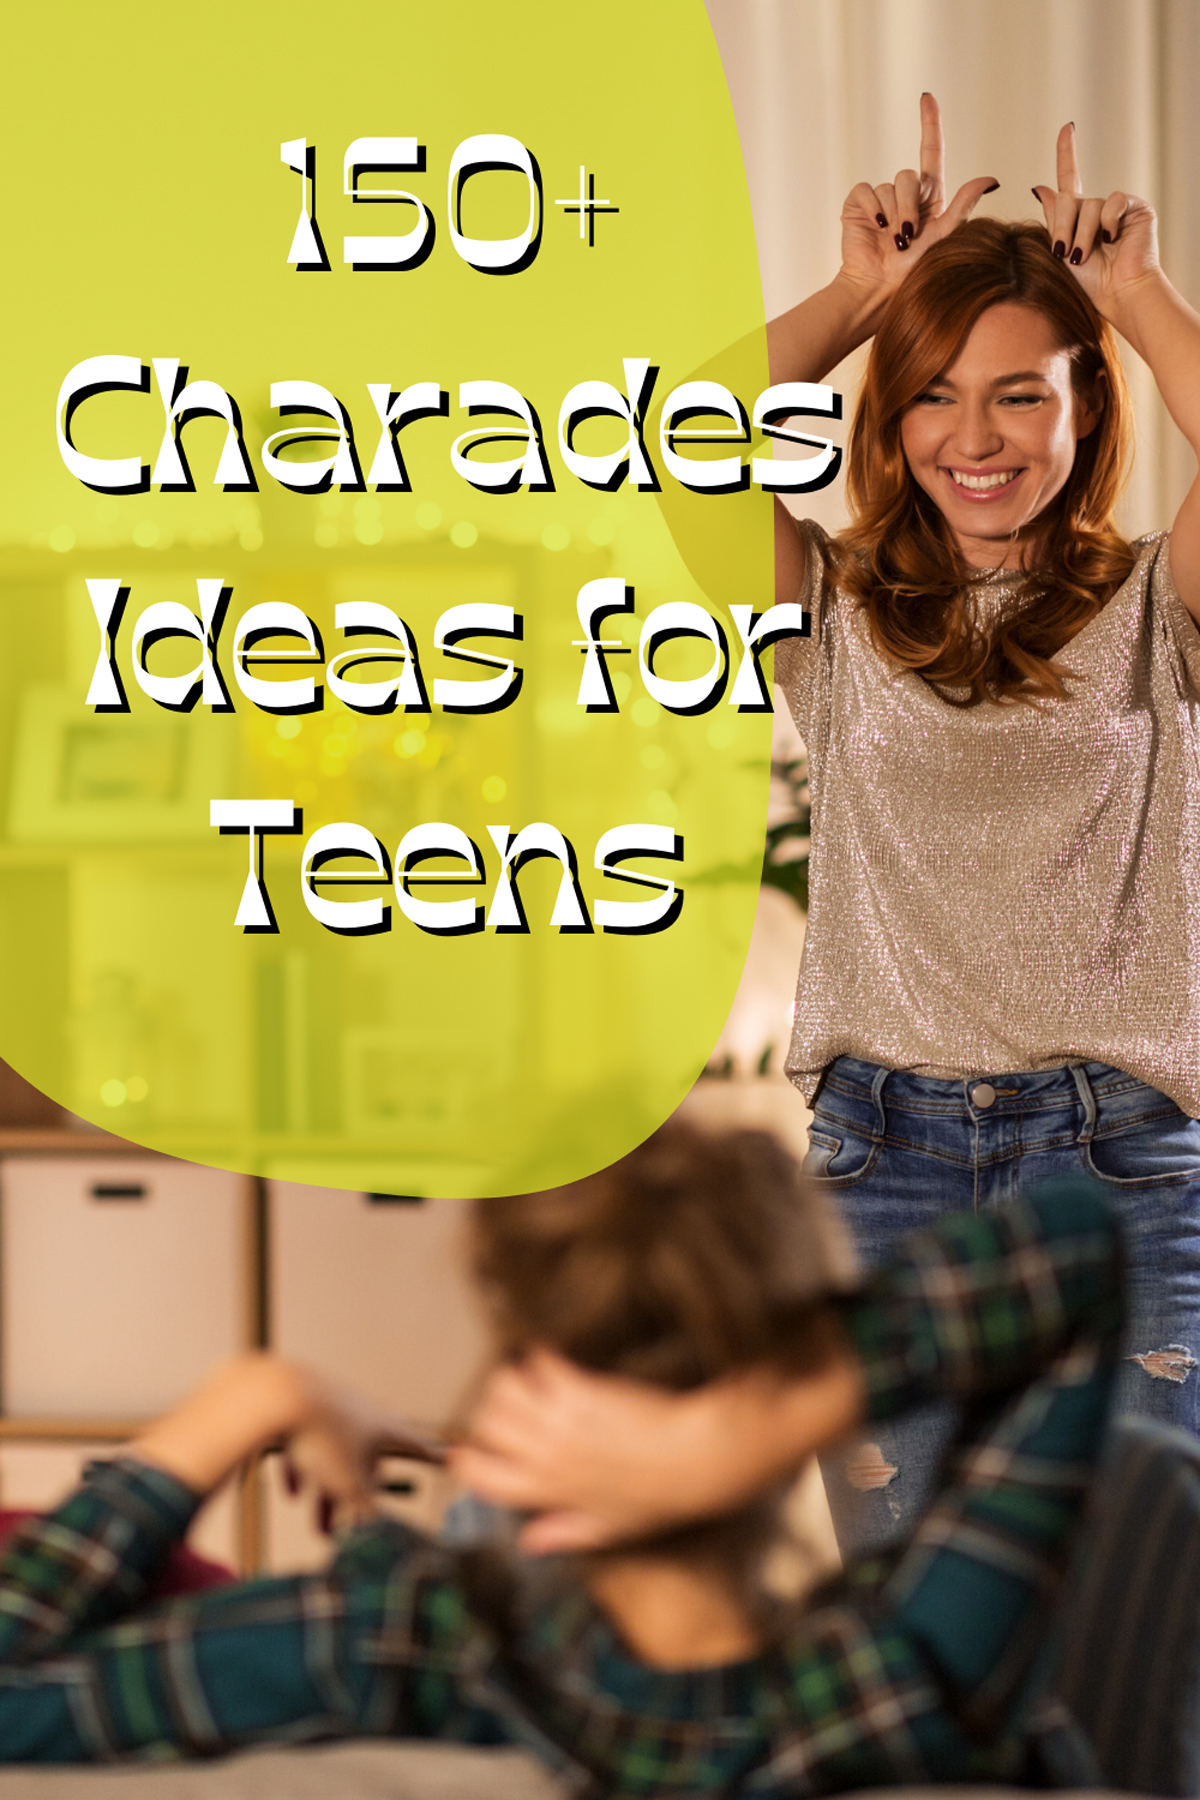 Charades for Teens